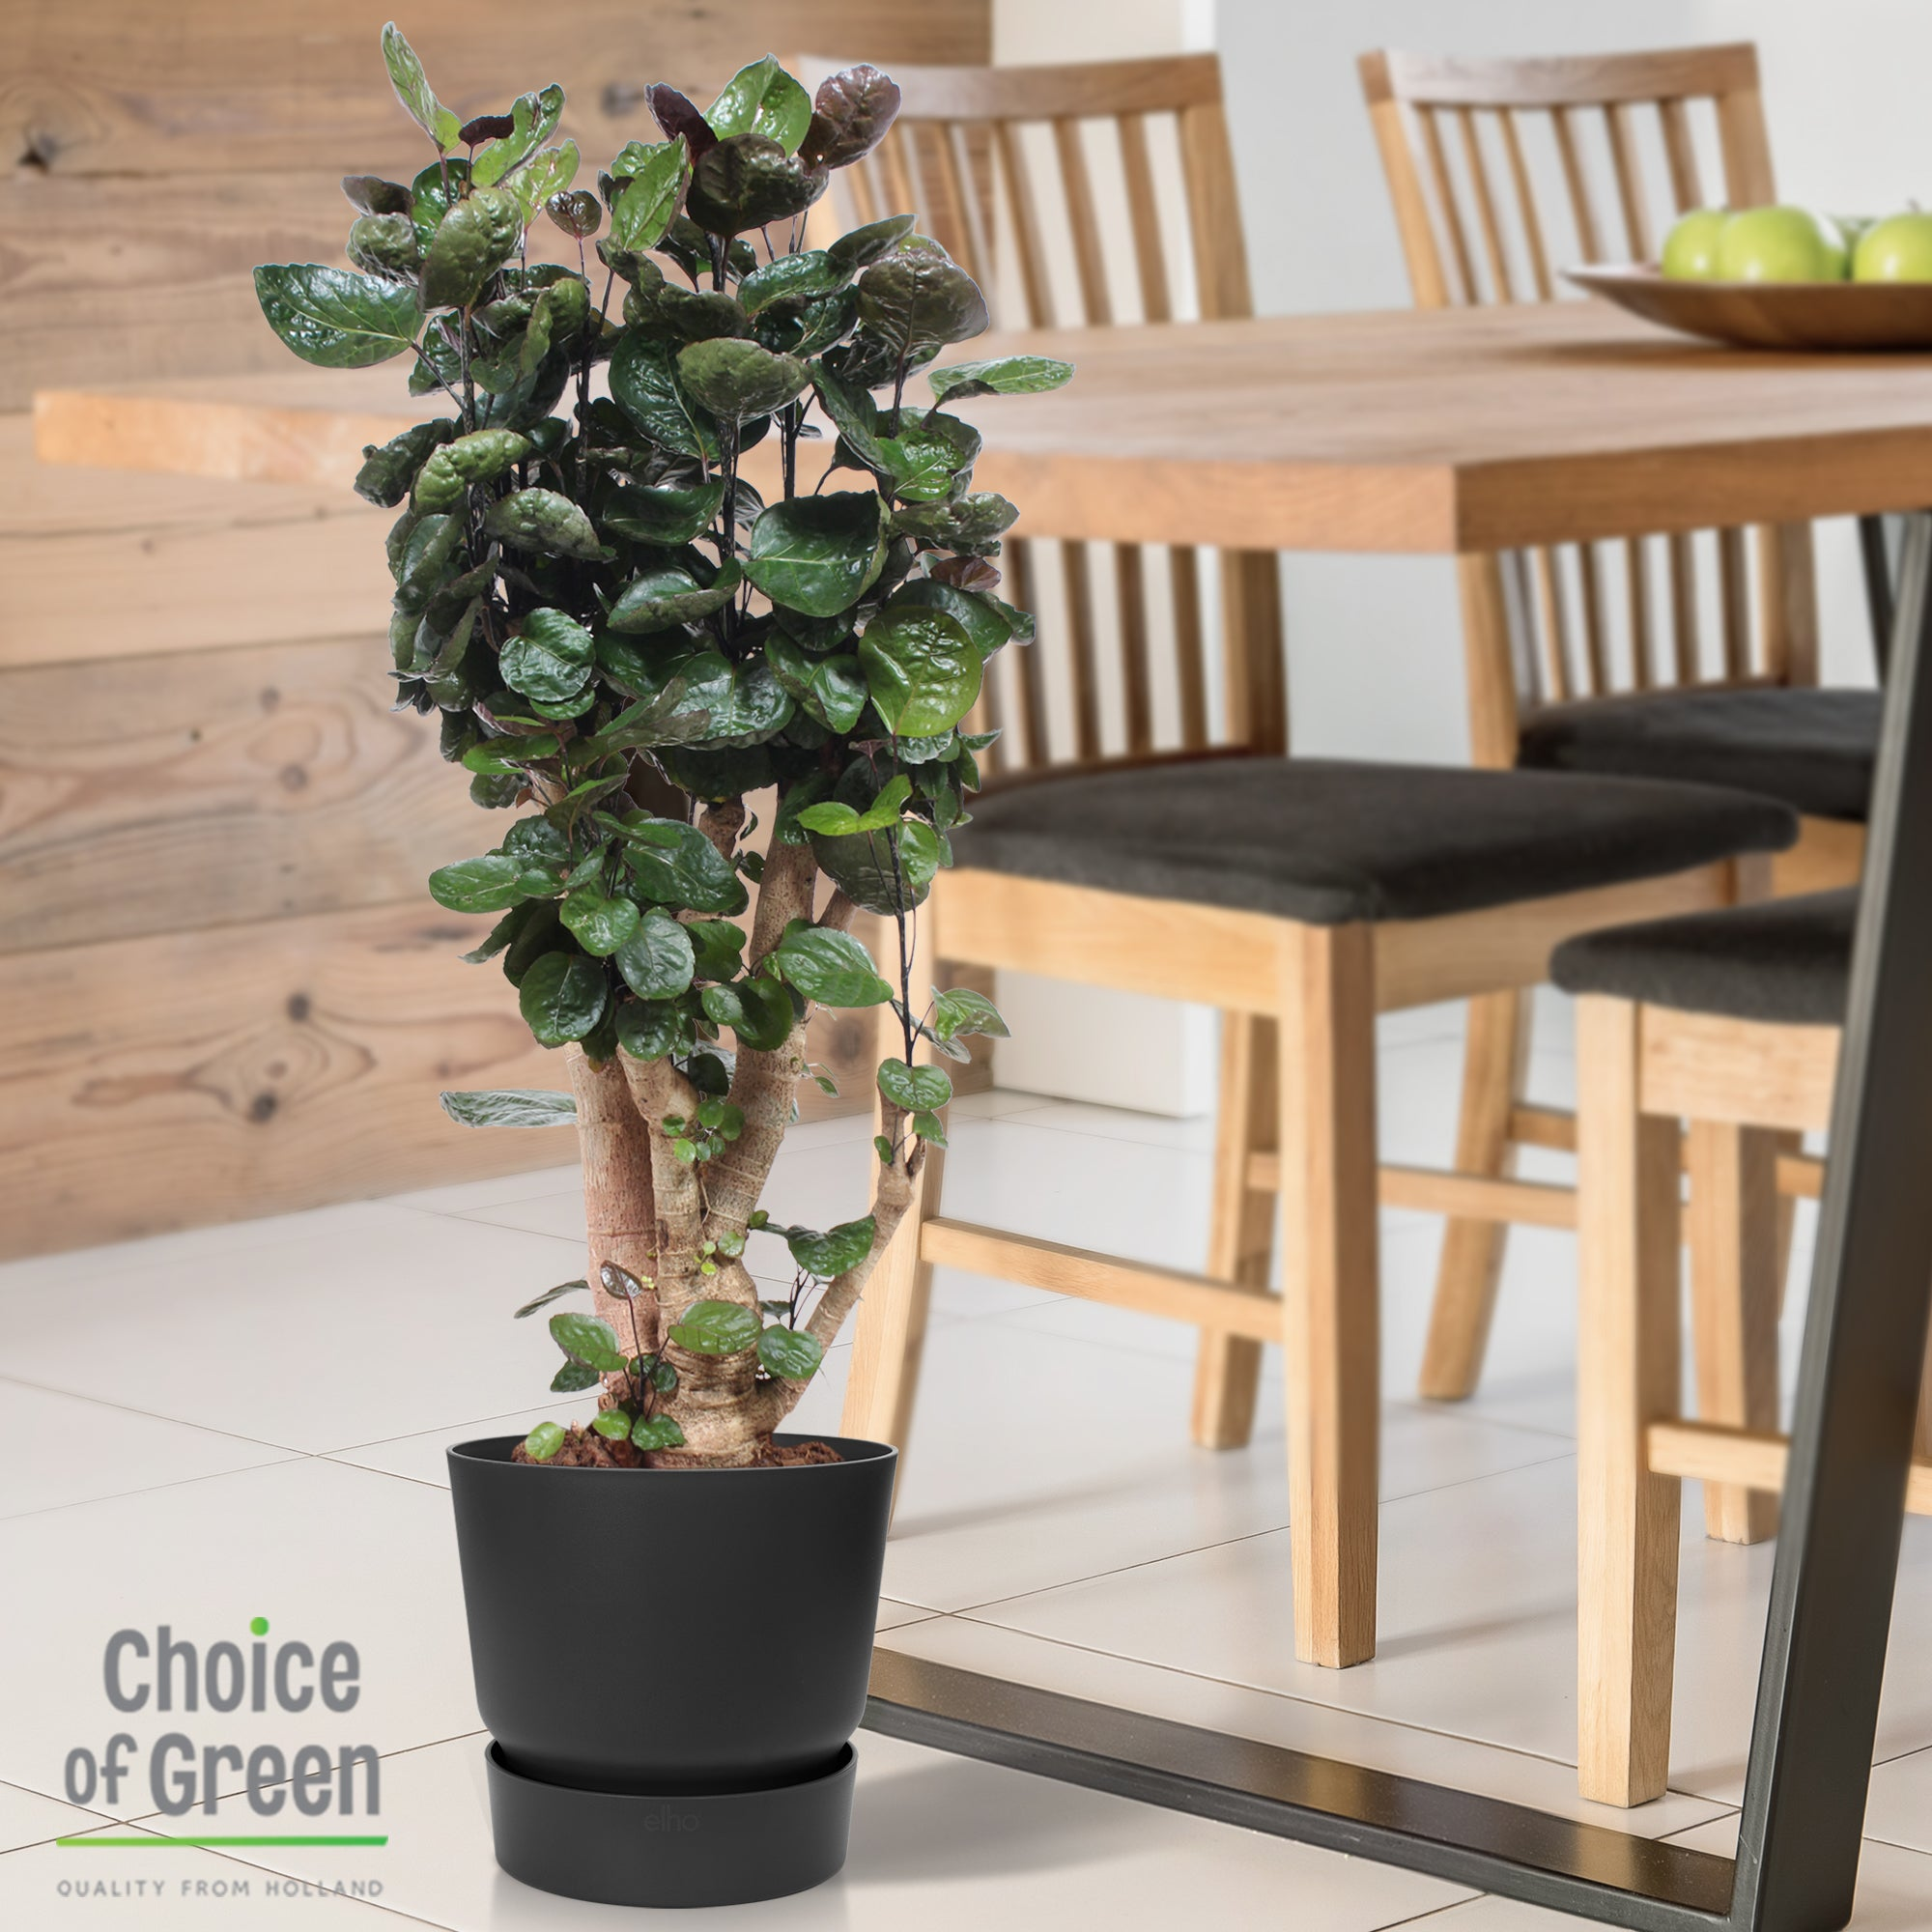 Choice of Green - Polyscias scutellaria Fabian - Aralia - in Elho® Greenville pot zwart - Hoogte 100 cm - Diameter pot 30 cm